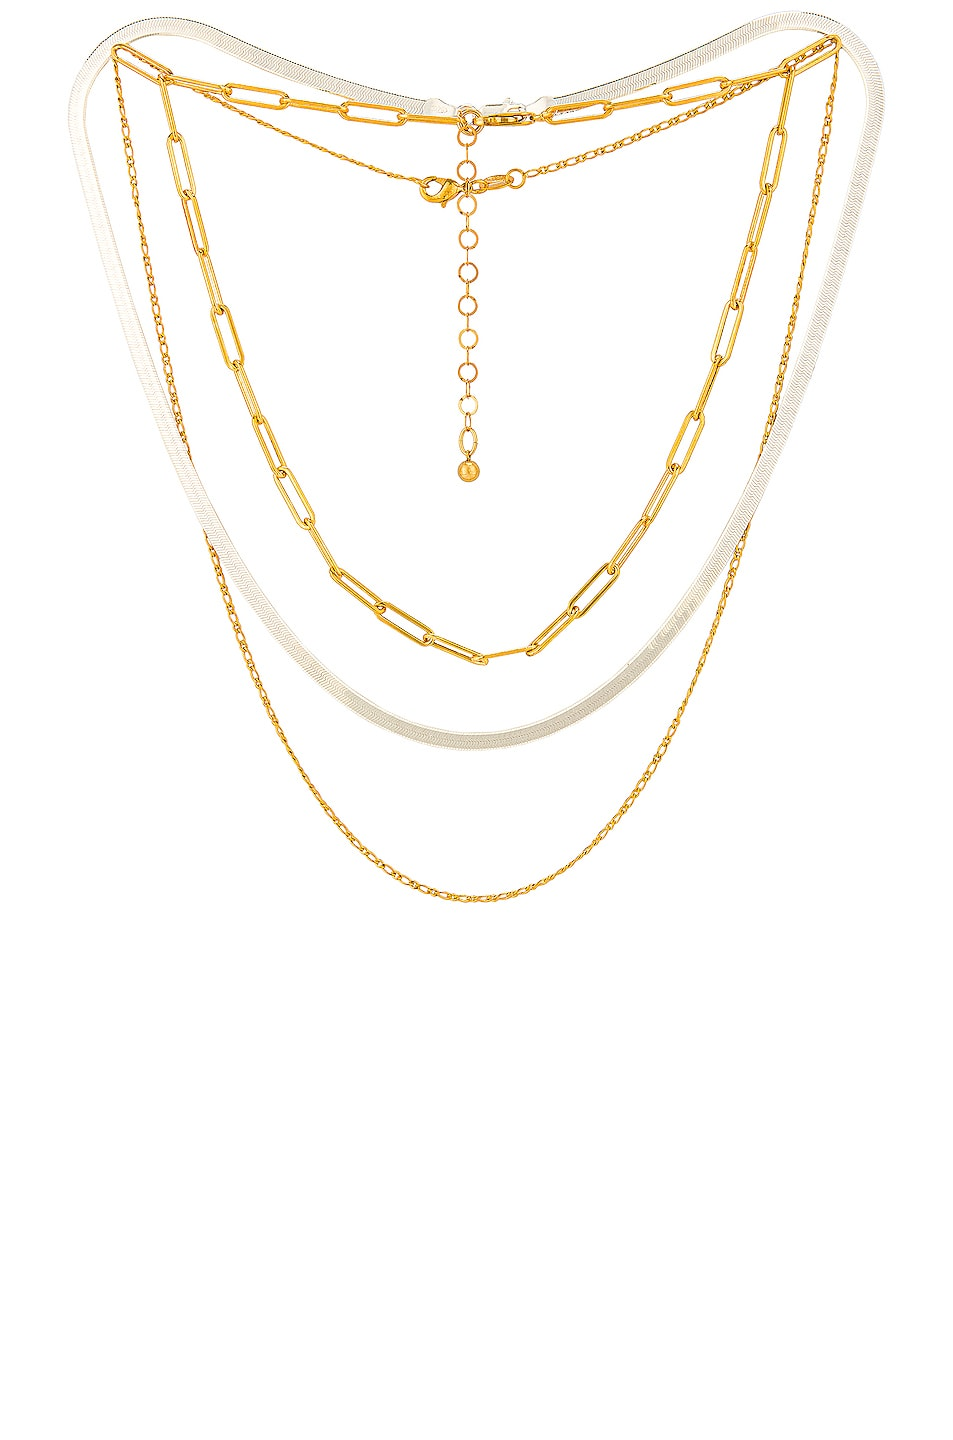 Image 1 of Jordan Road Jewelry for FWRD Samba Necklace Stack in Gold & Silver